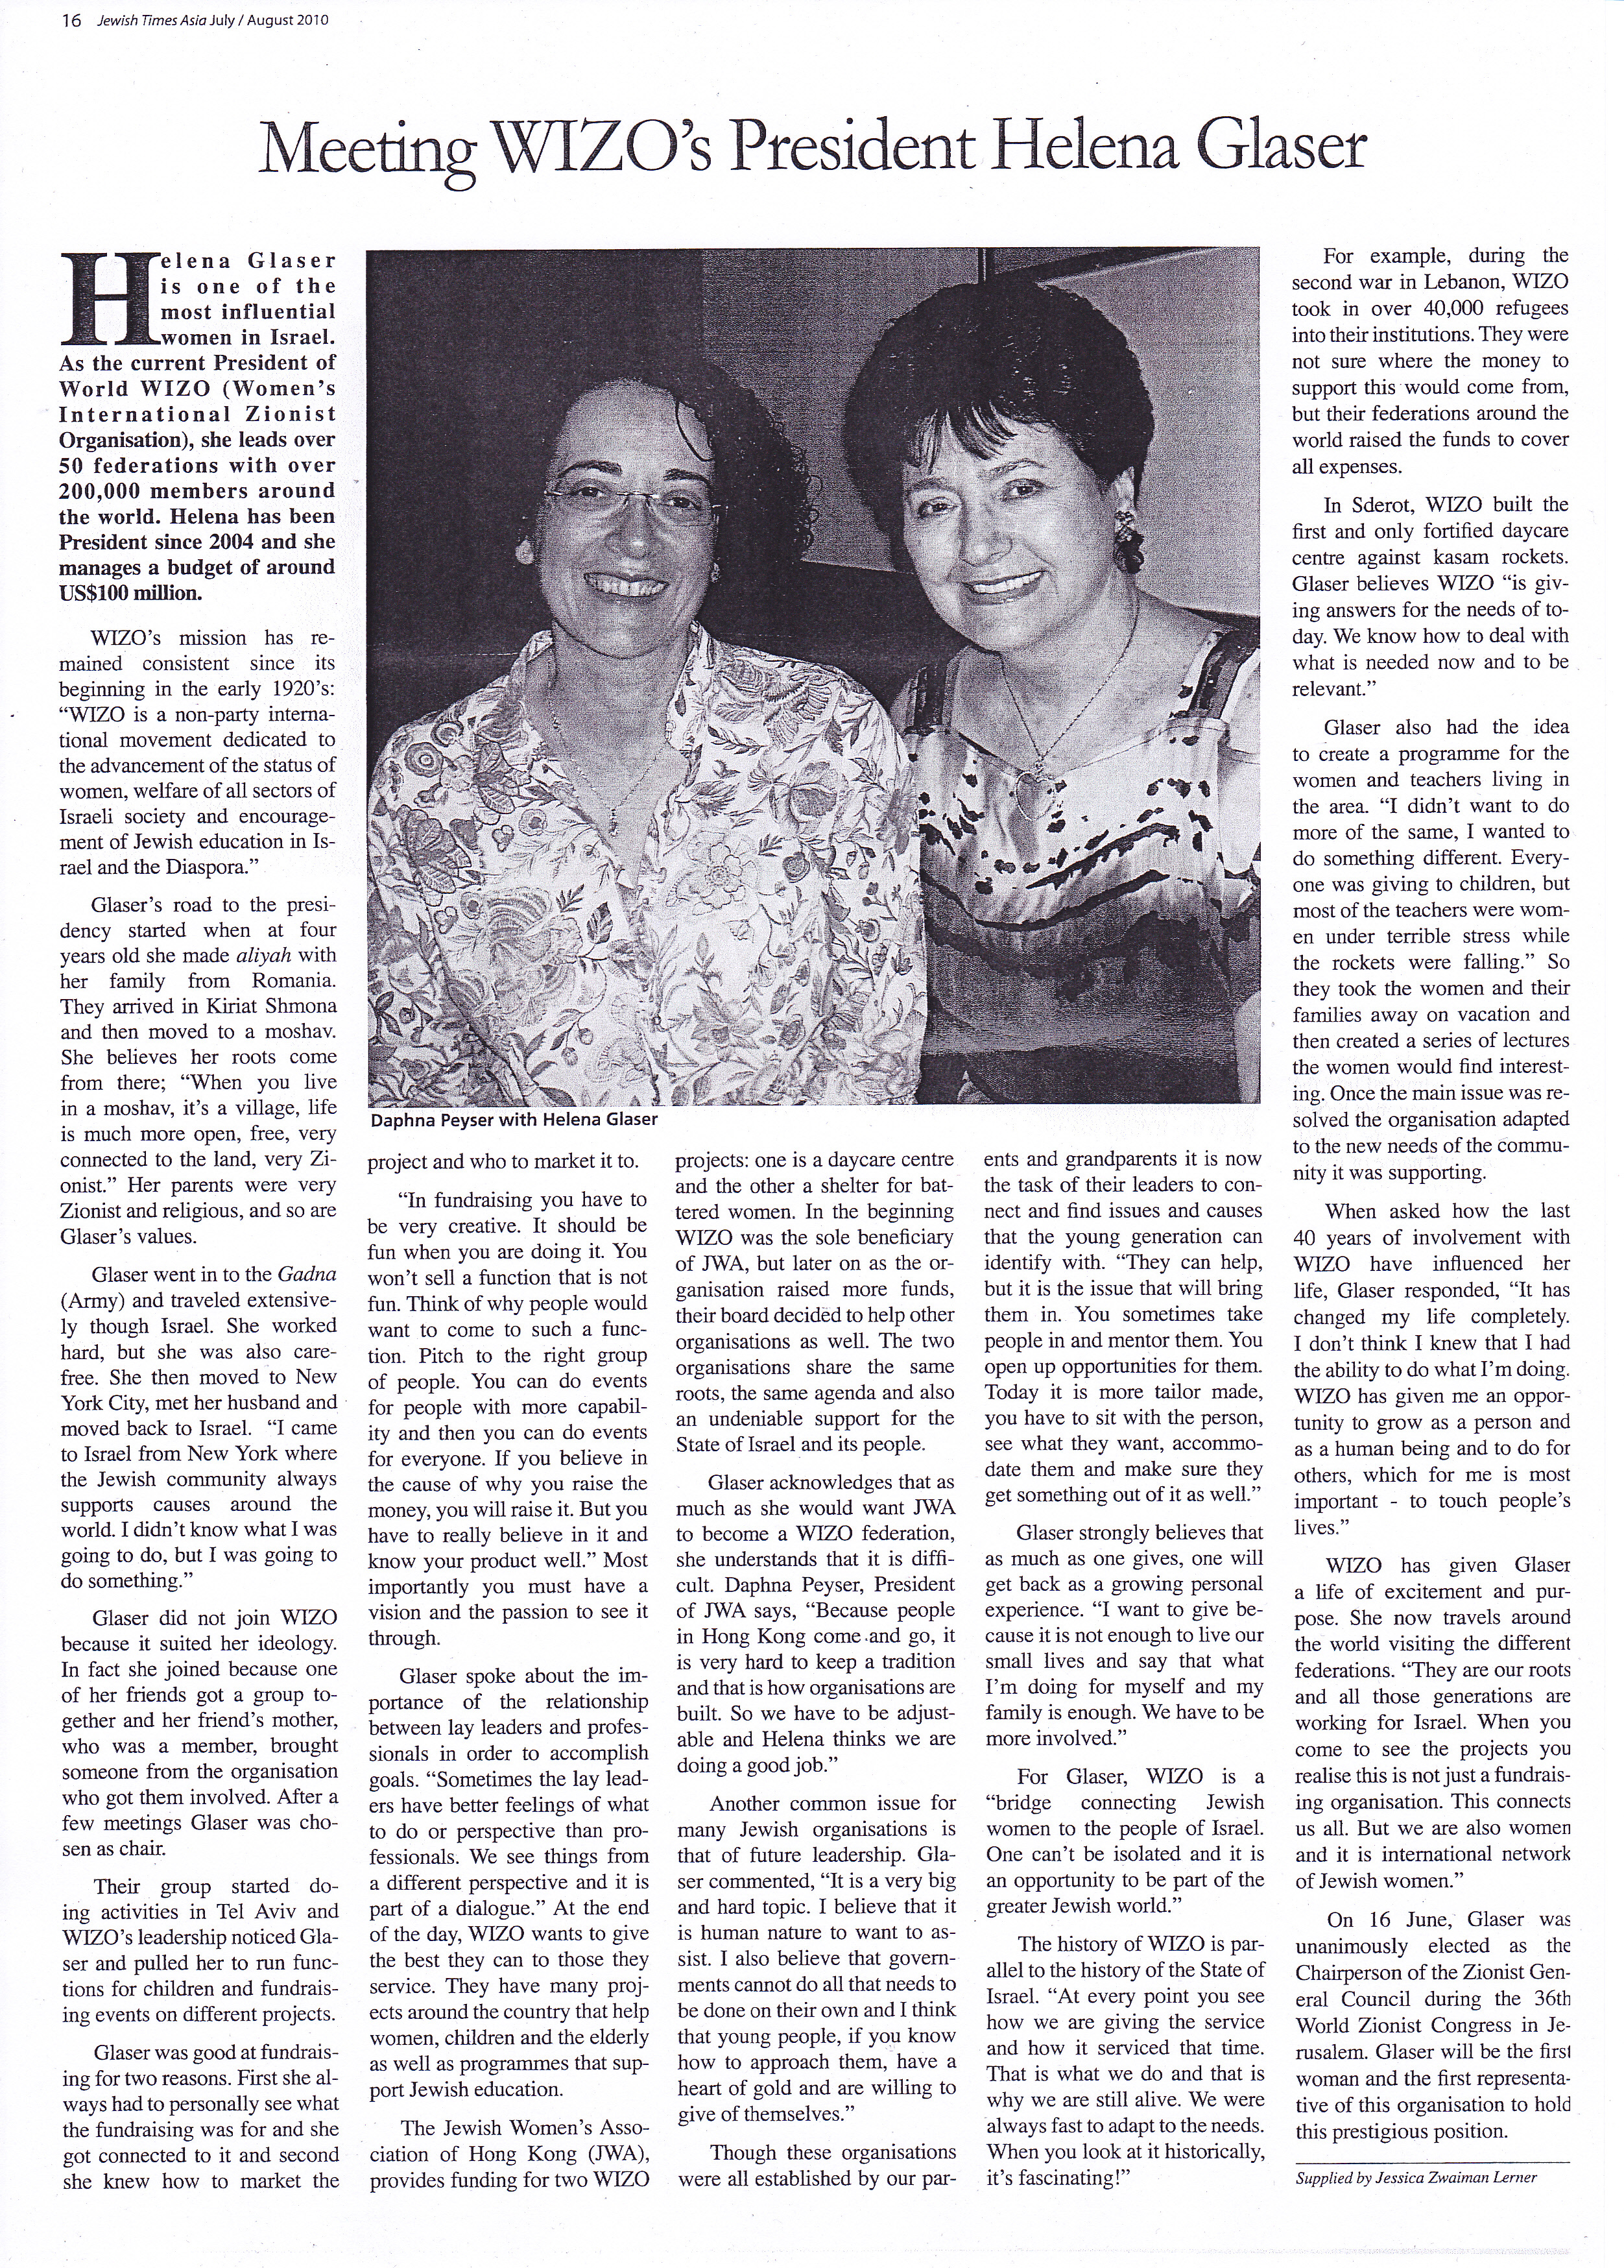 Jewish Times Asia: July/August 2010 – Helena Glaser